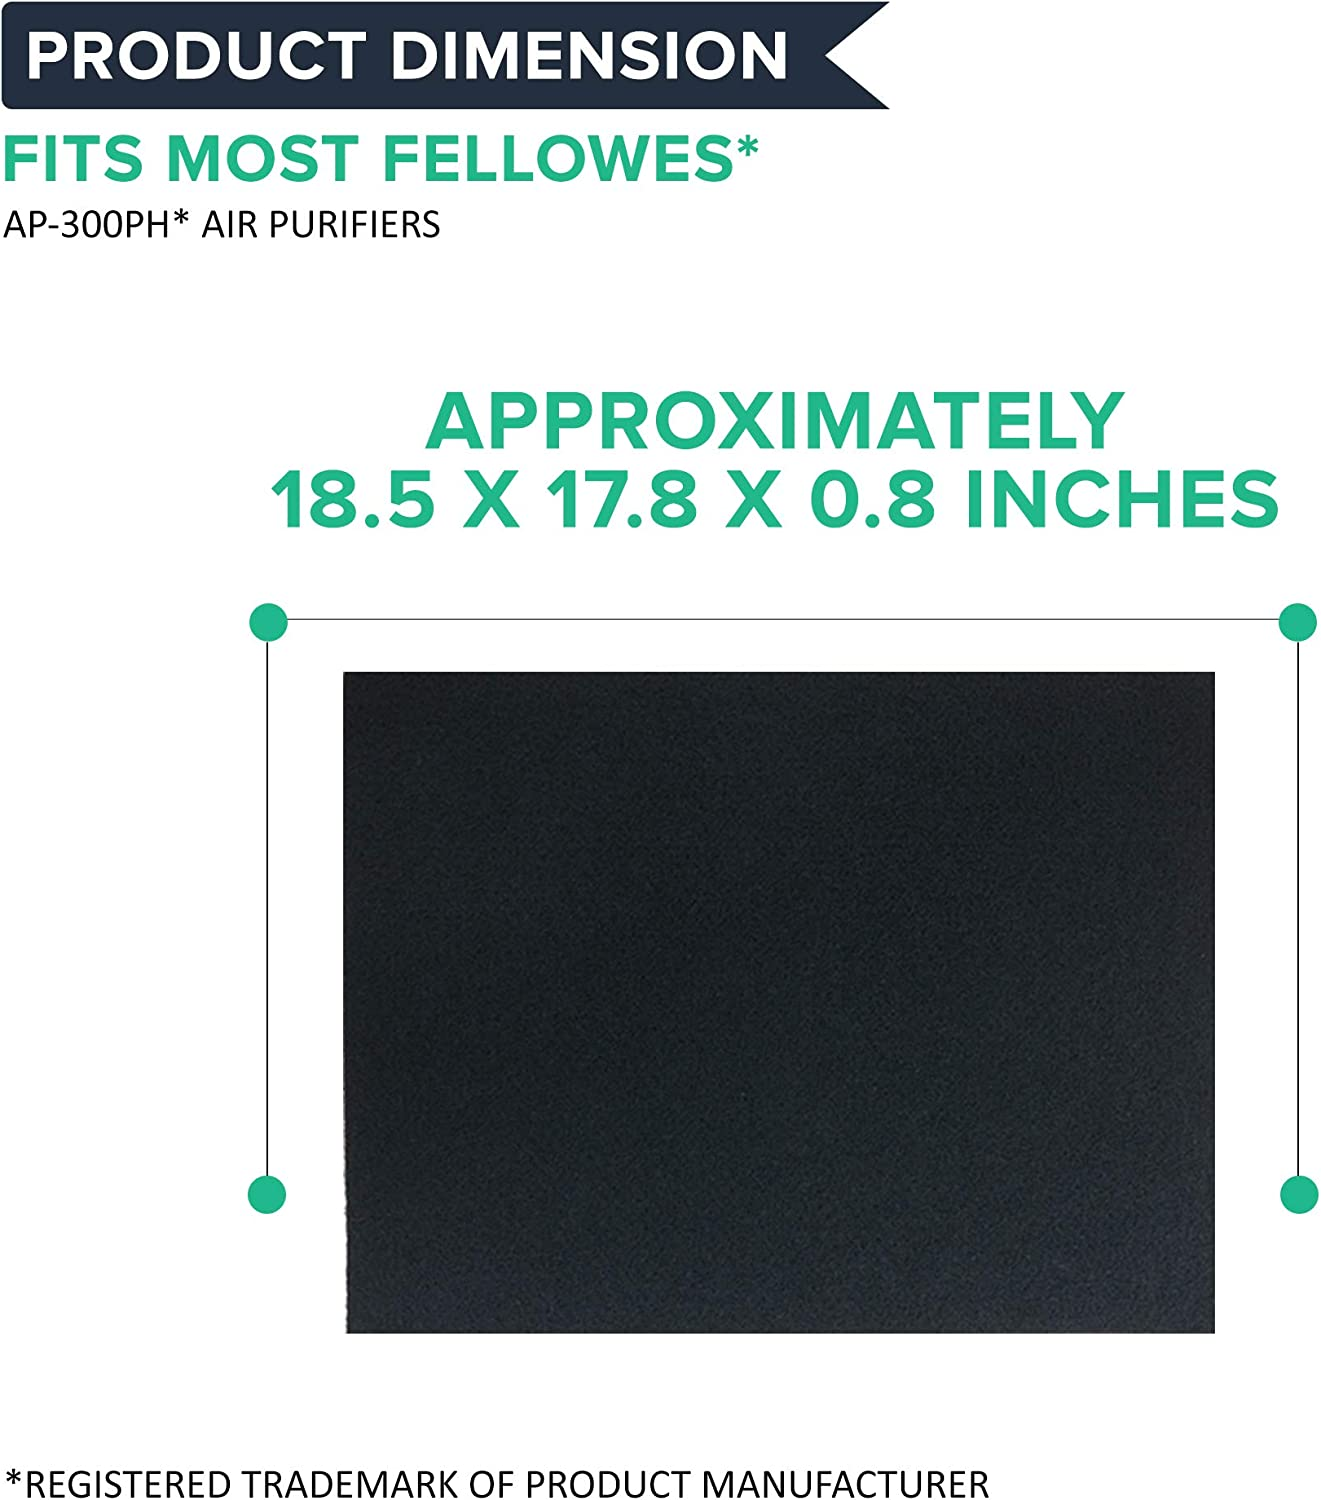 8 Pack fits Fellowes CF300 9372101 Carbon Pre Filters for AP300PH Air Purifier